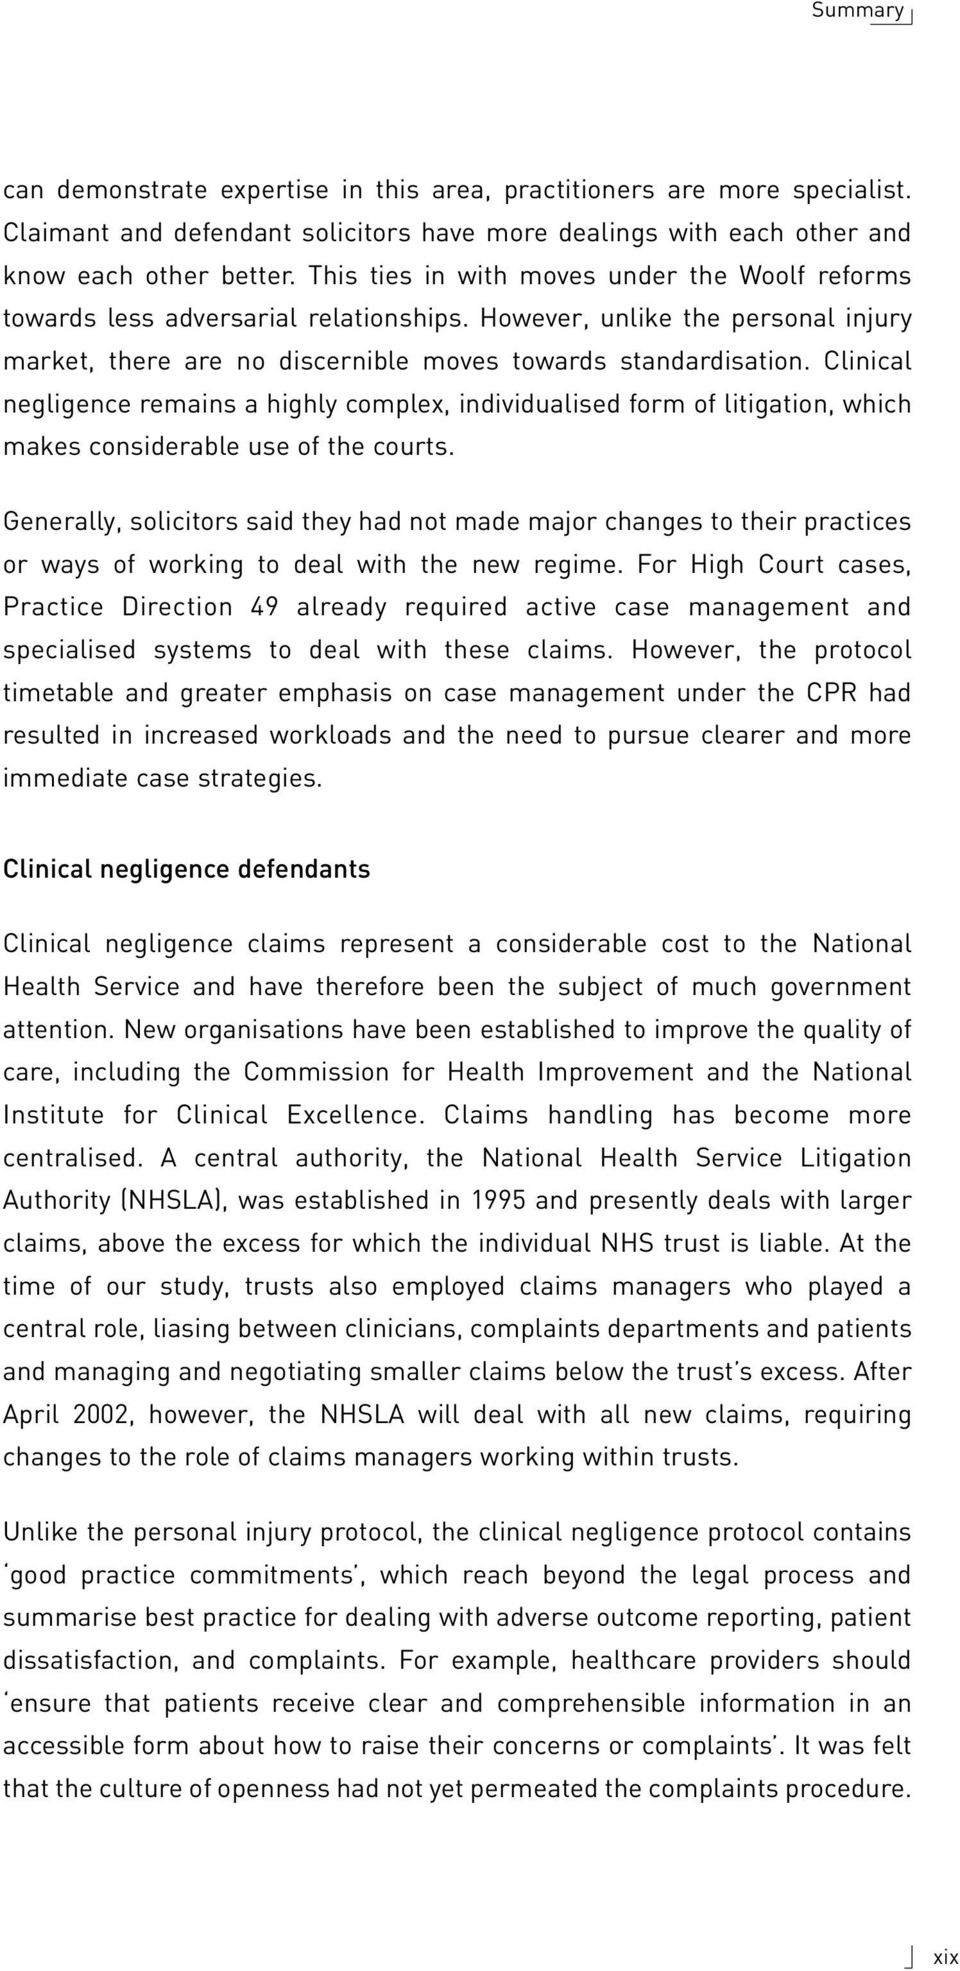 Clinical negligence remains a highly complex, individualised form of litigation, which makes considerable use of the courts.